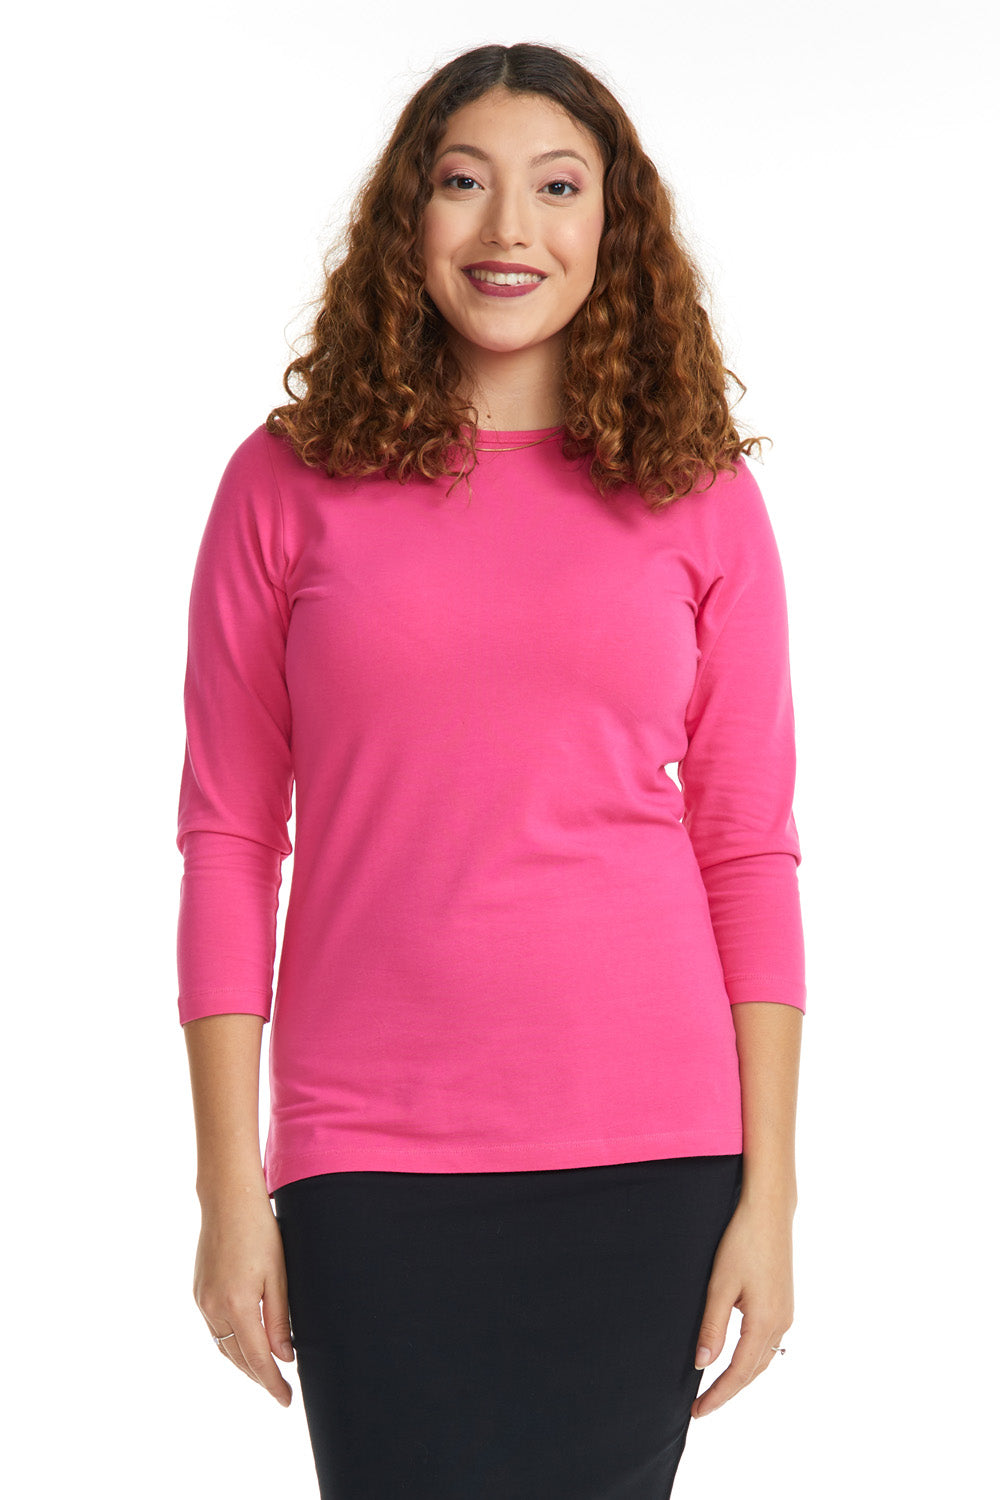 Esteez ¾ Sleeve Cotton Spandex RELAXED FIT Layering Shirt for WOMEN - MAGENTA